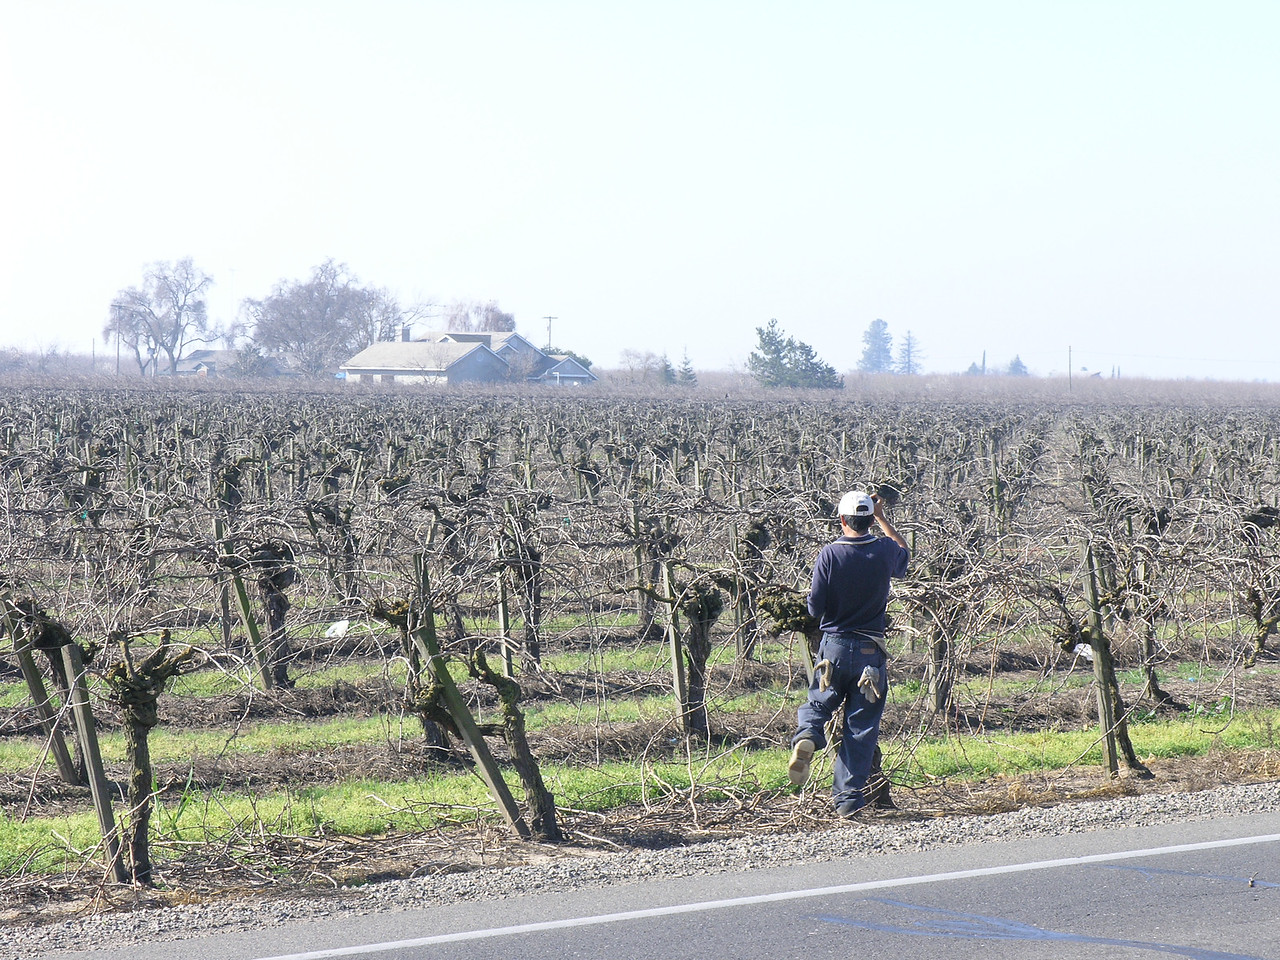 Driving on Keyes road I saw a small crew pruning grapes.